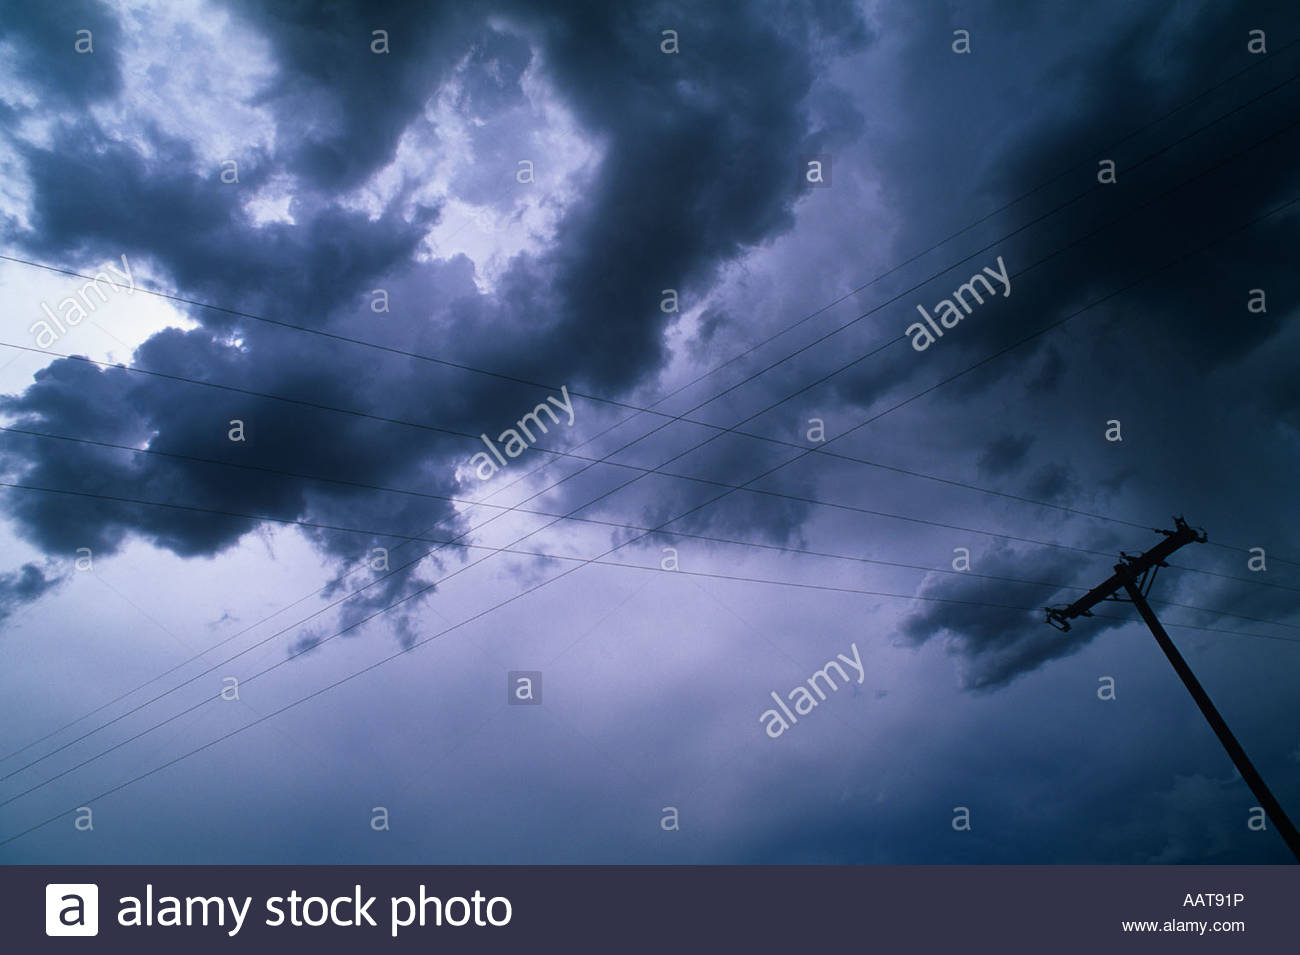 Crossed wires under a severe thunderstorm, Amarillo, Texas. - Stock Image